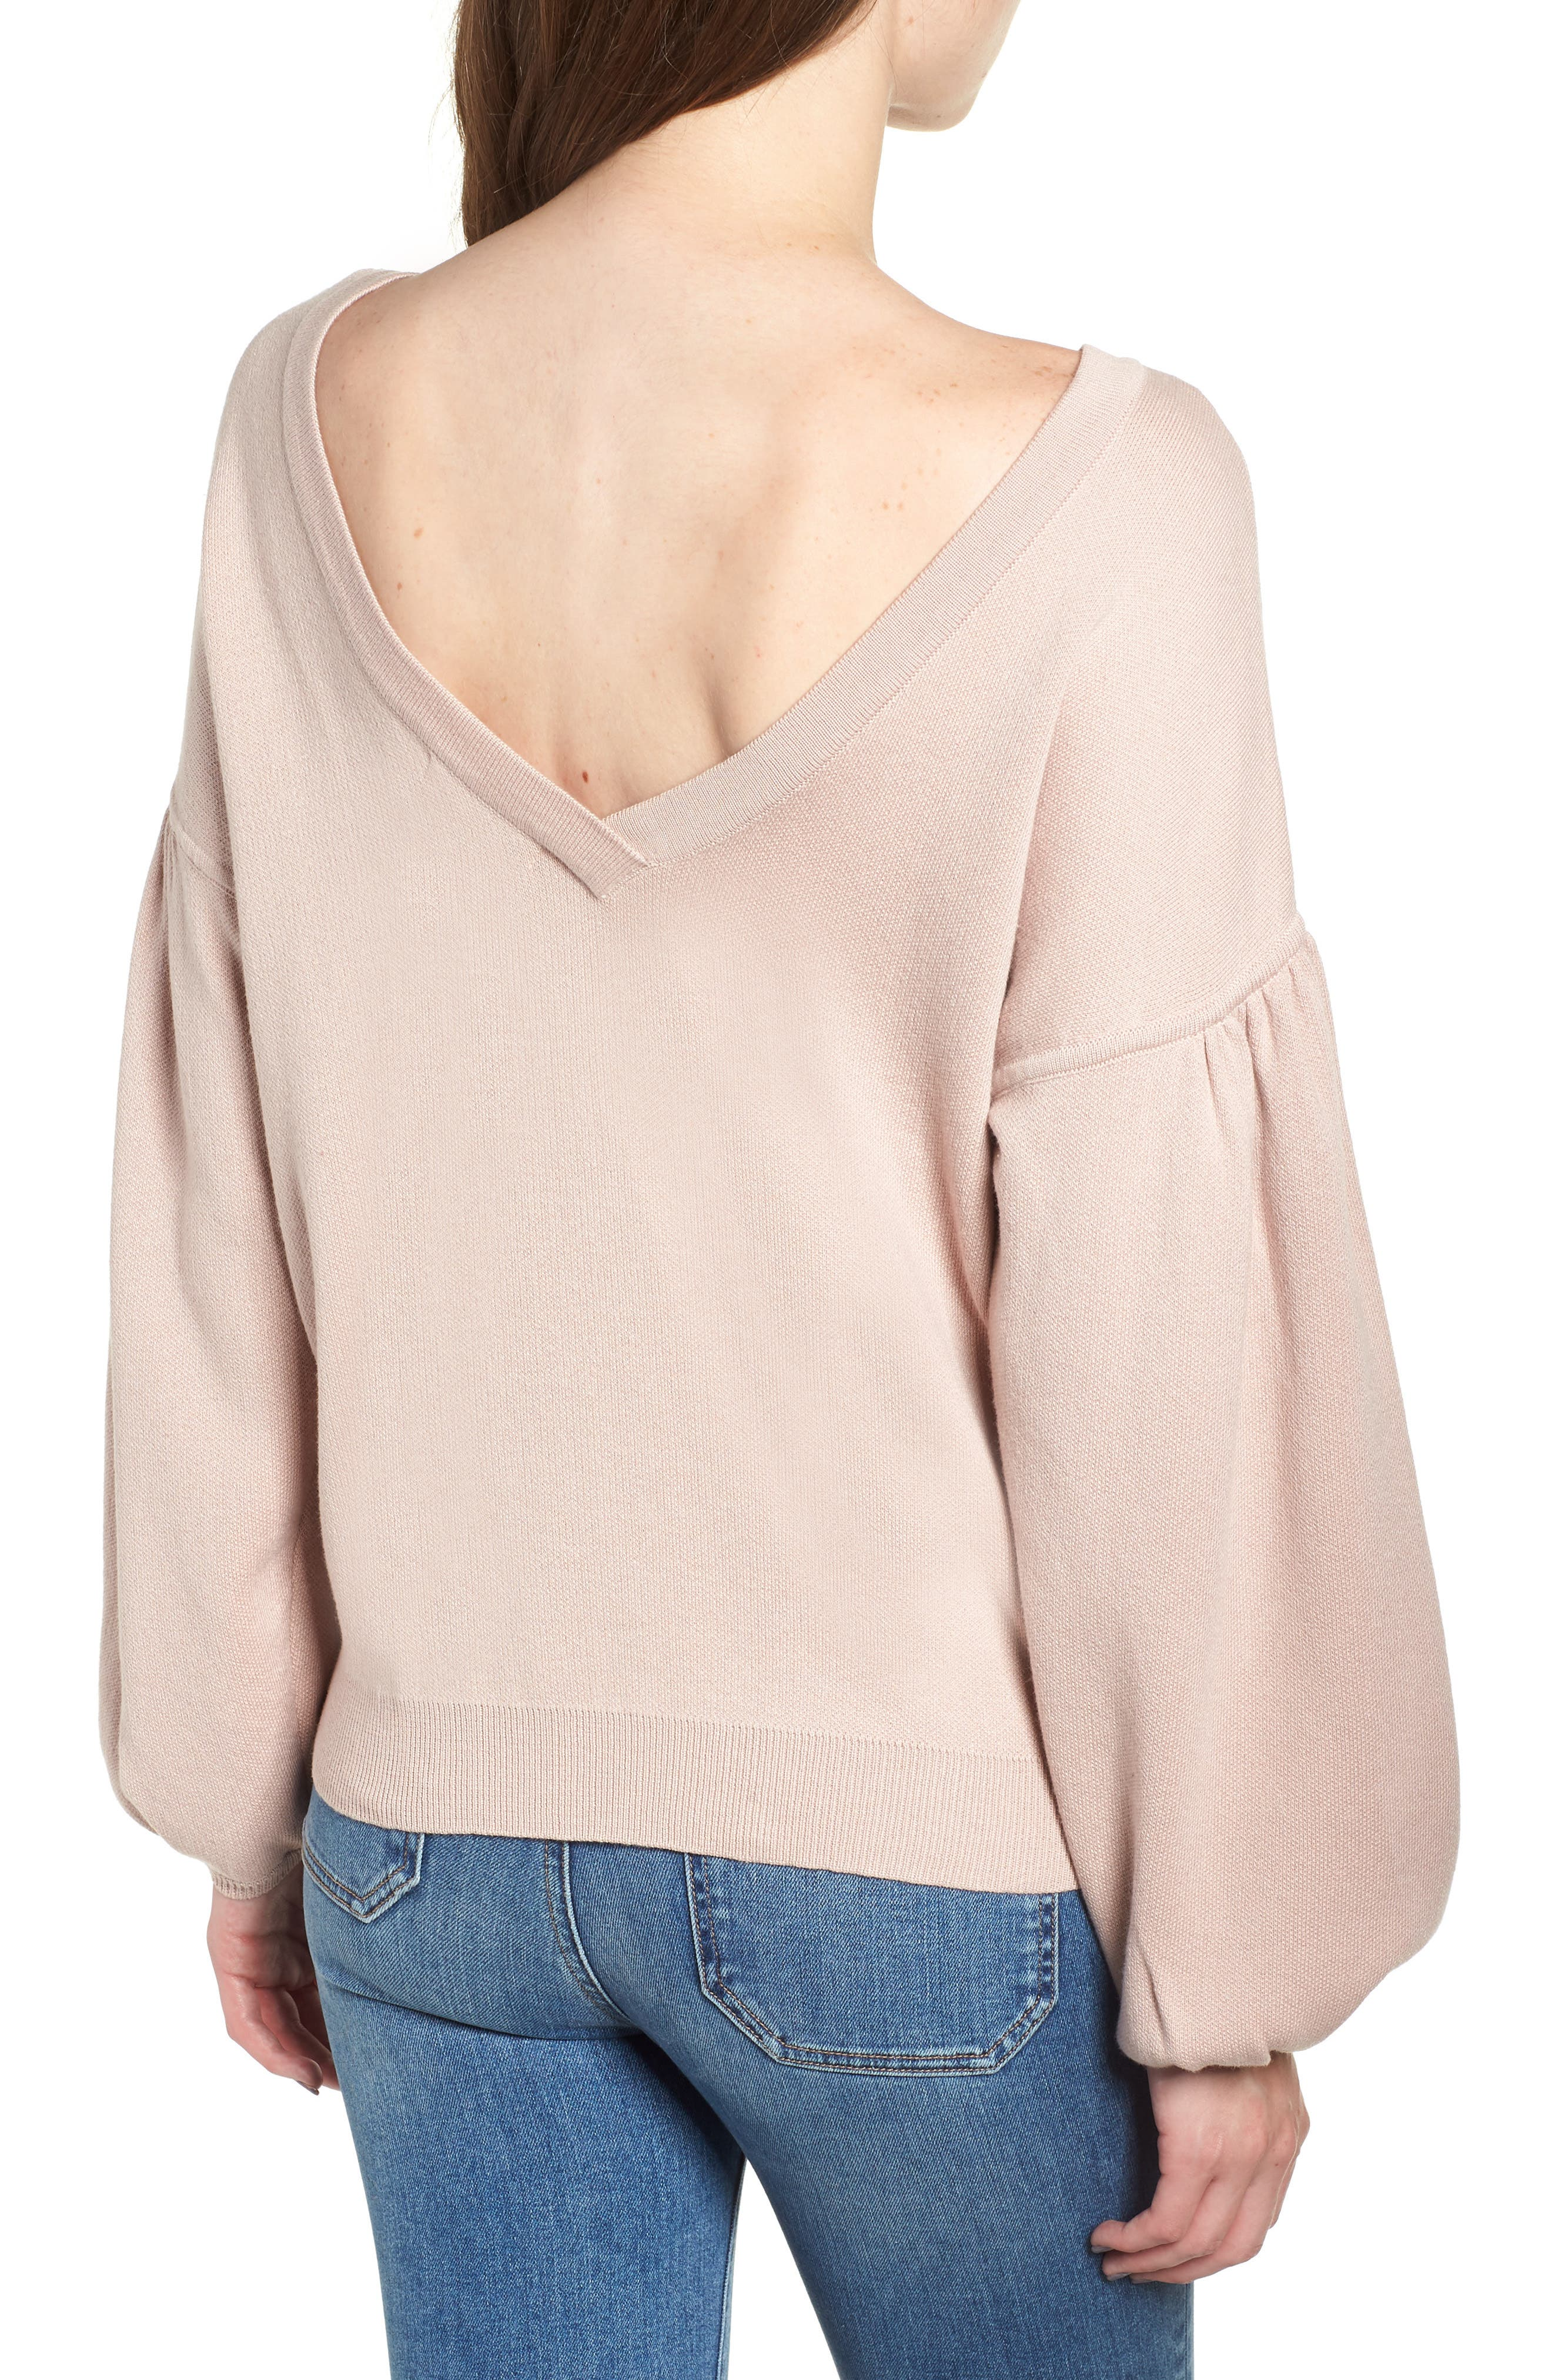 Bishop + Young Hailey Balloon Sleeve Sweater,                             Alternate thumbnail 2, color,                             QUARTZ